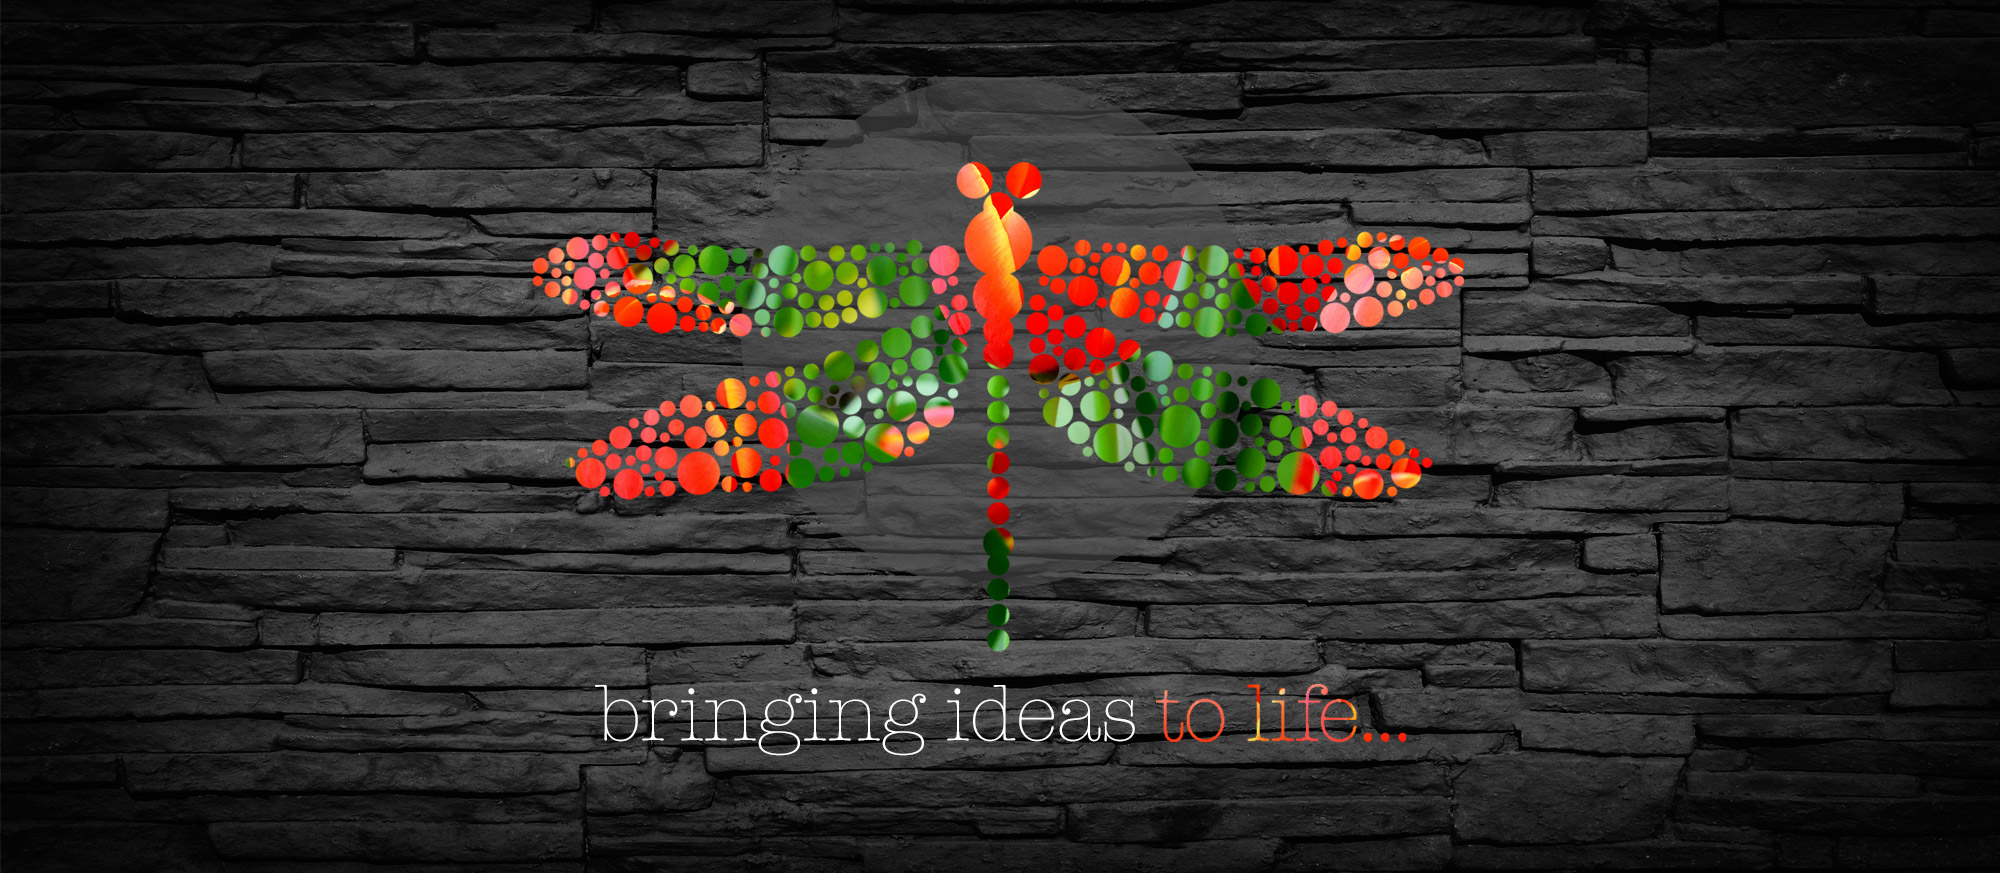 visual Insight - We'll bring your ideas to life